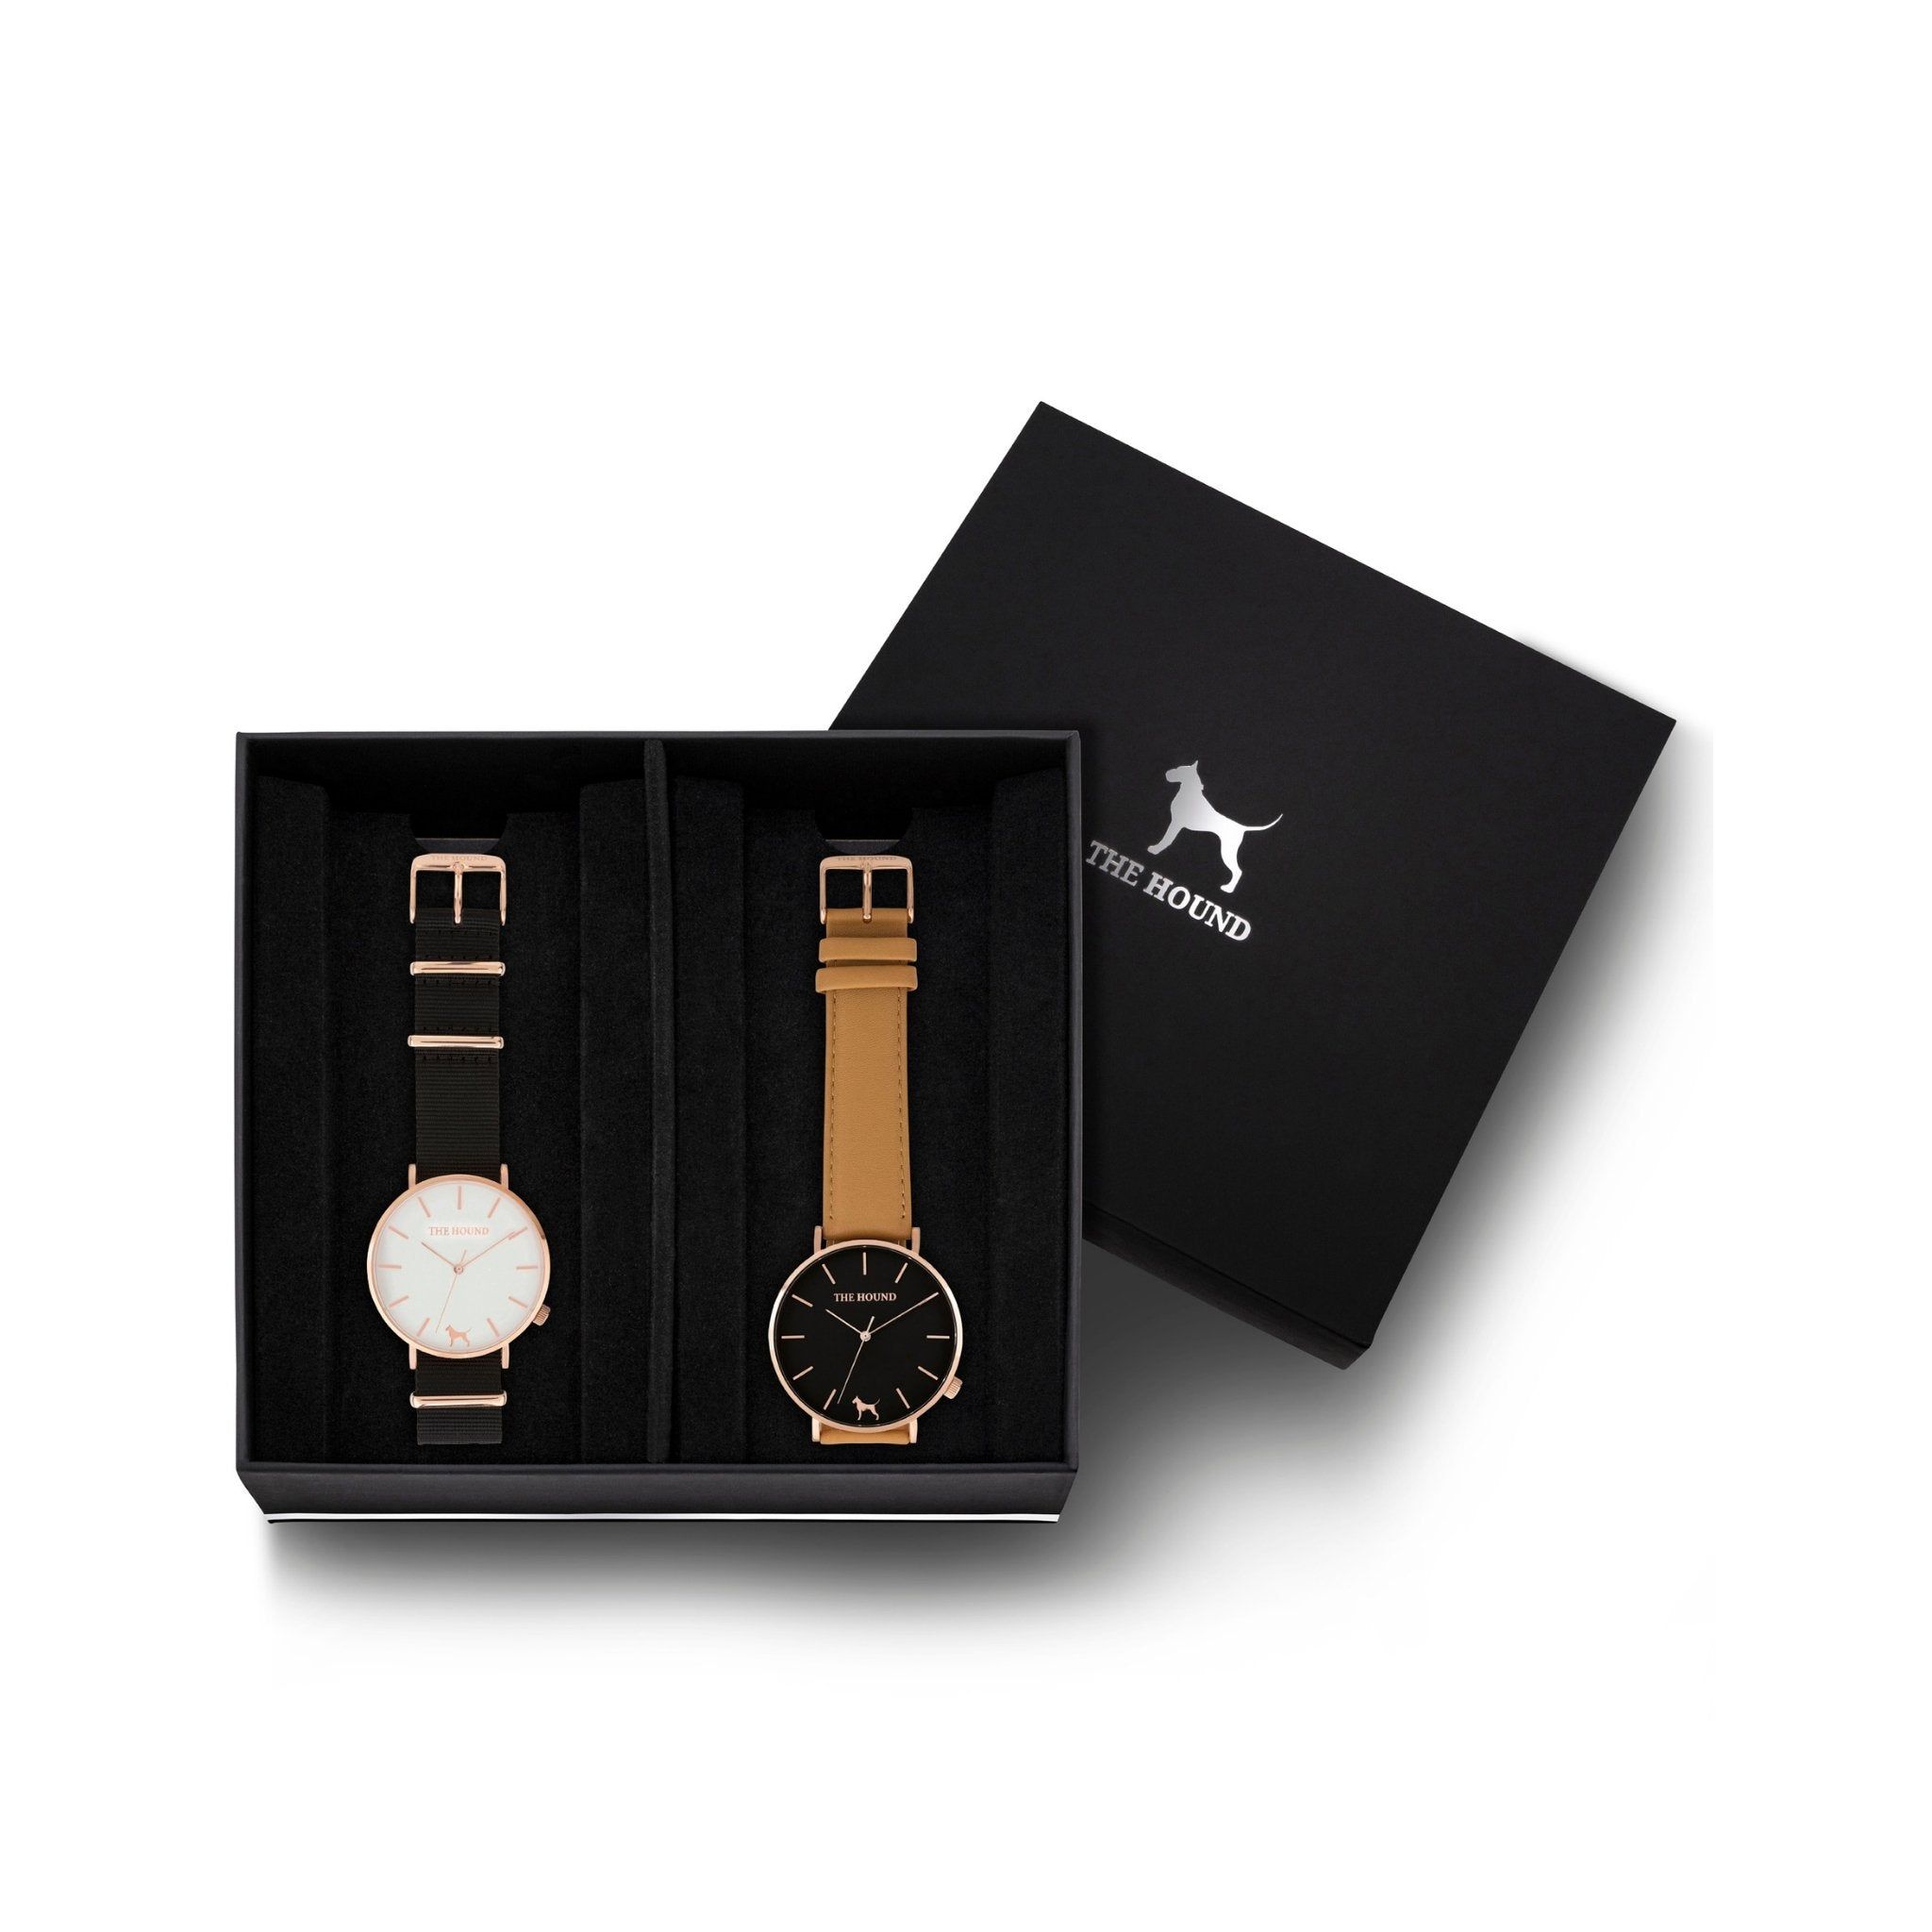 Custom gift set - Rose gold and white watch with black nato band and a rose gold and black watch with stitched camel genuine leather band